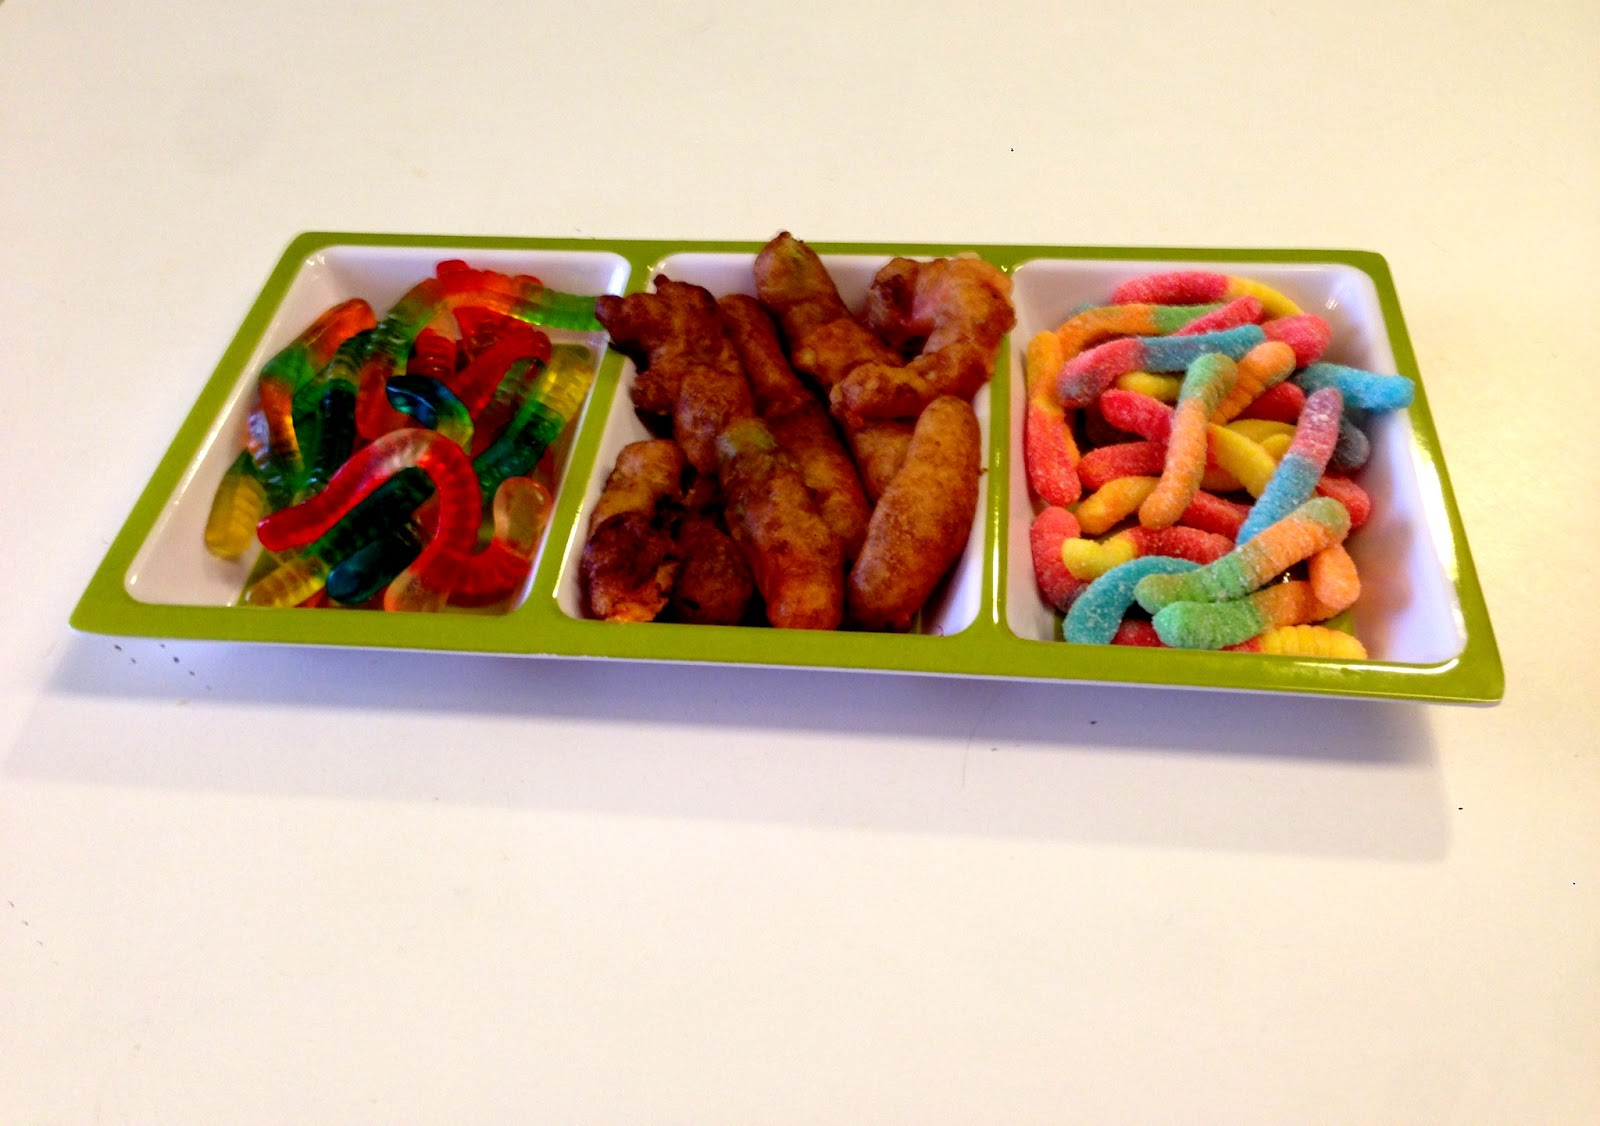 Have A Happy National Gummy Worm Day With Fried Gummy Worms! How To Eat